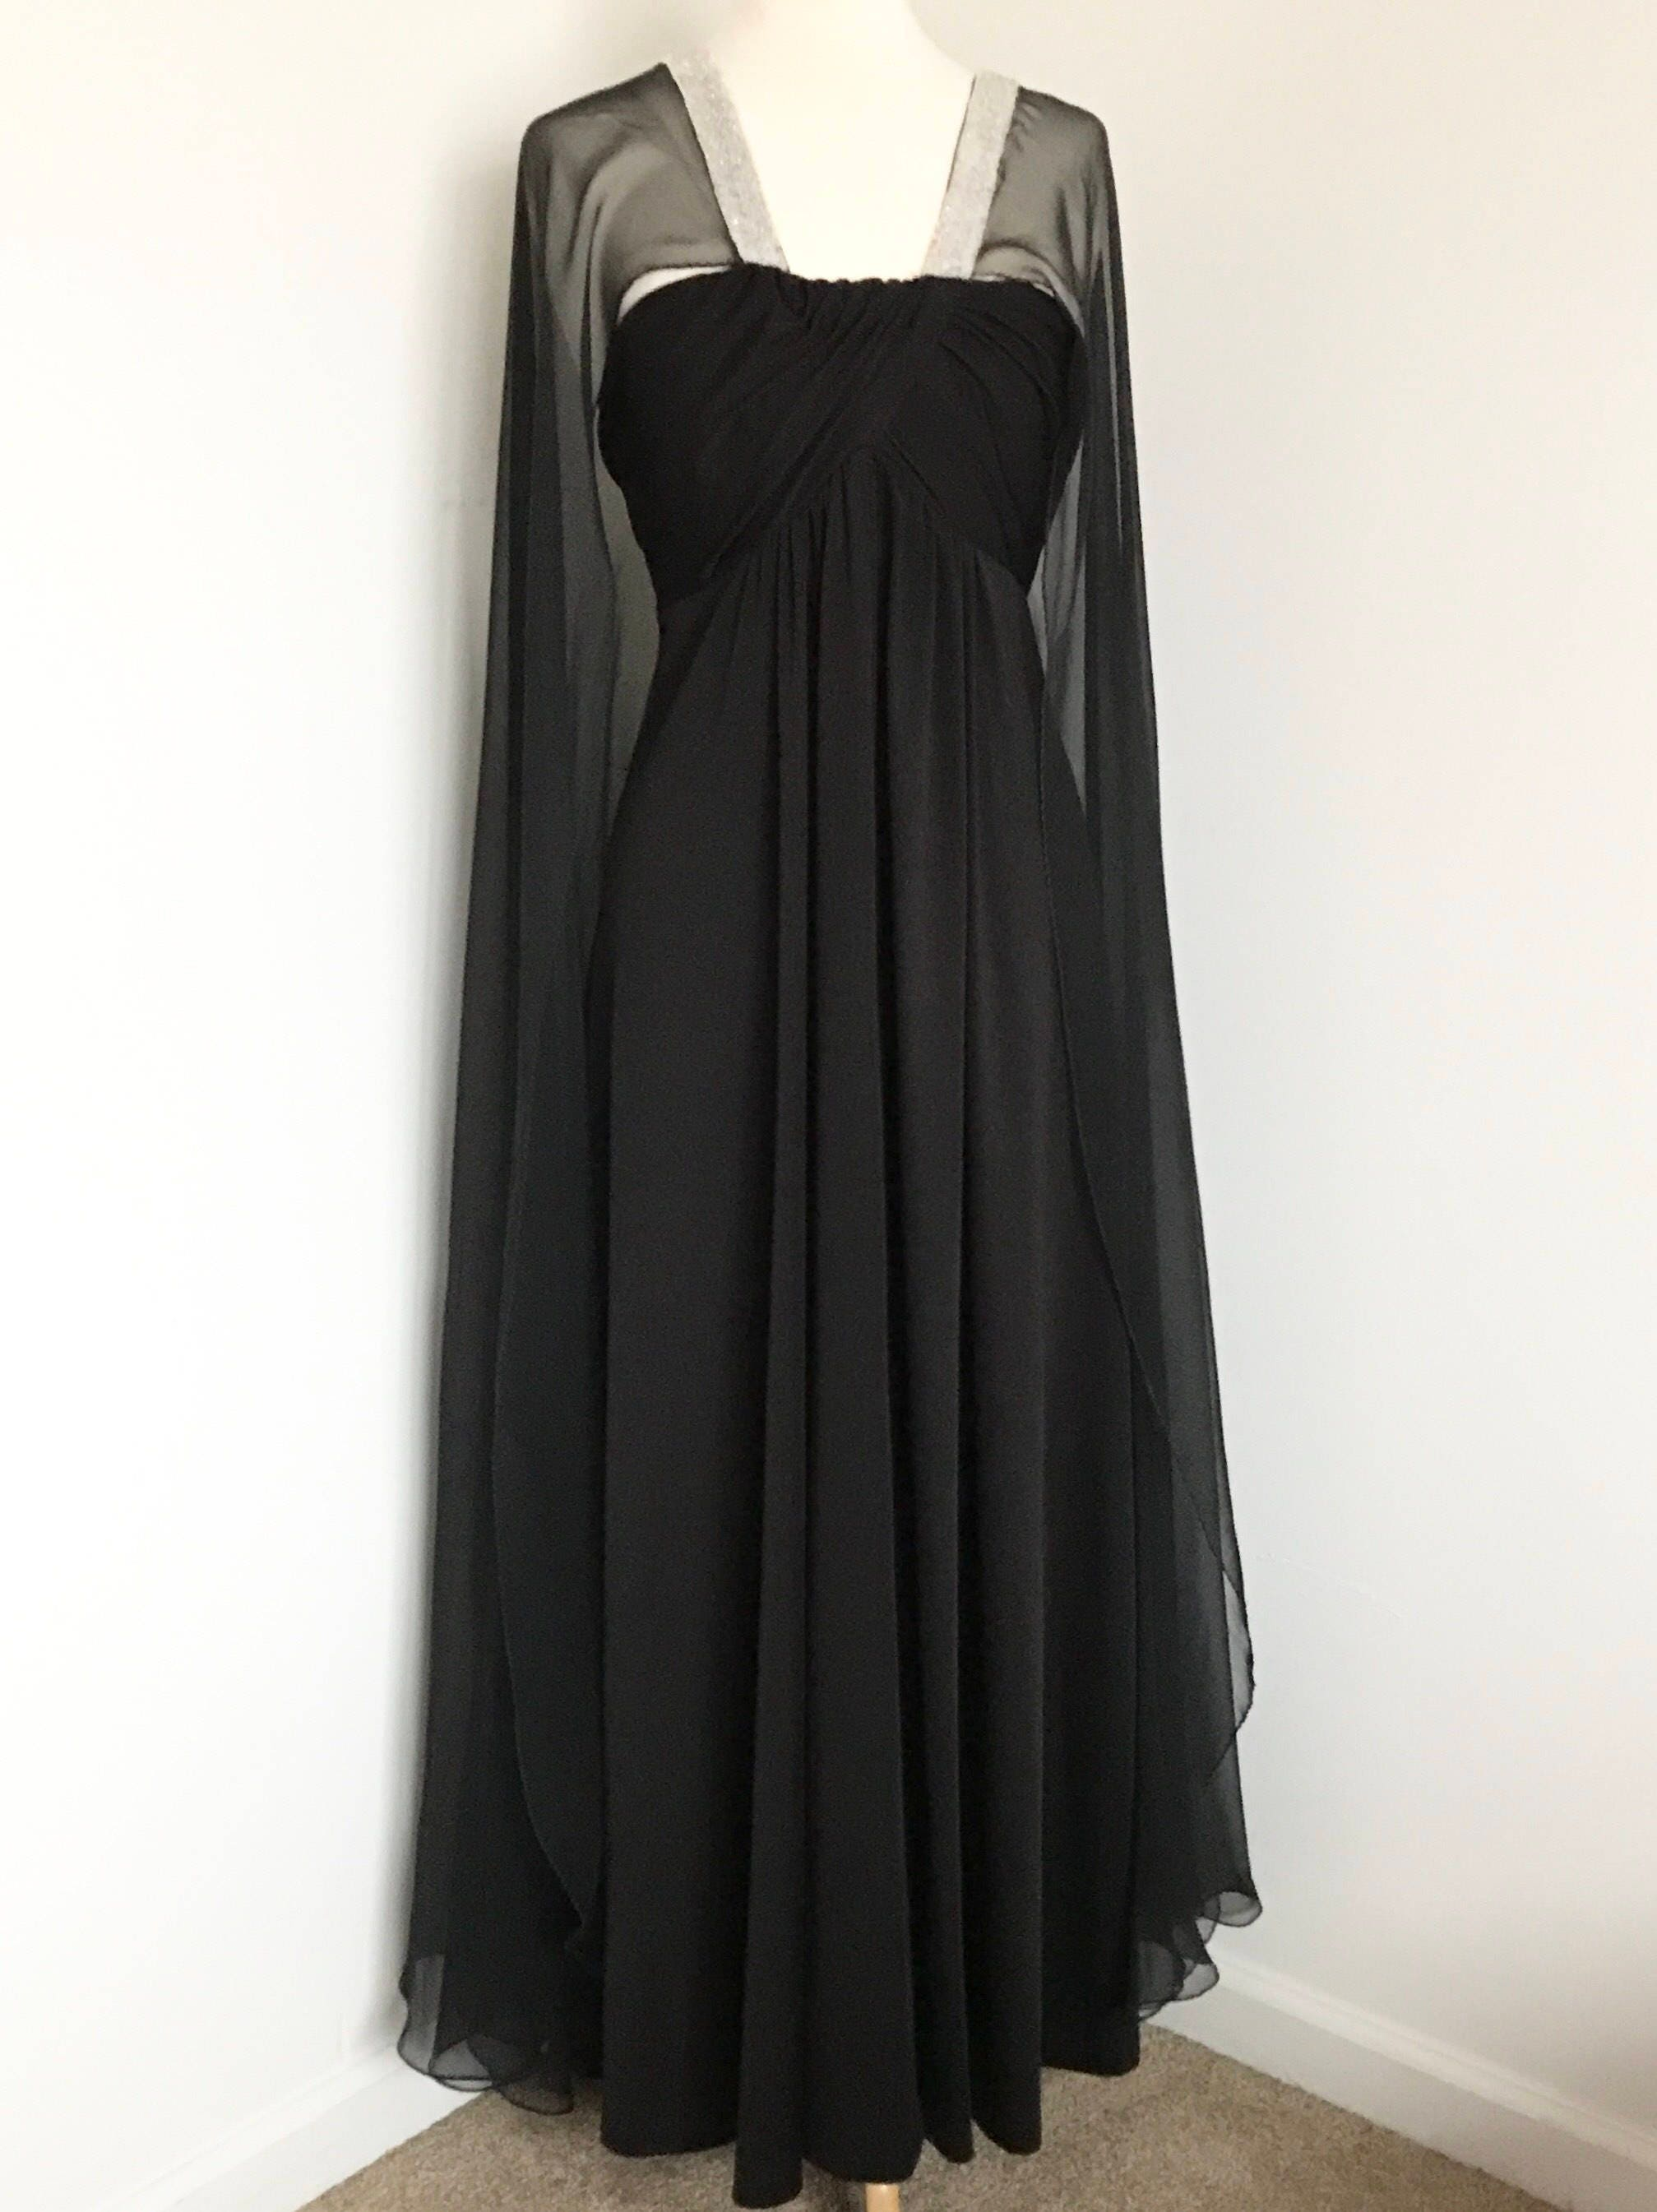 Vintage Black evening gown with sheer full-length cape